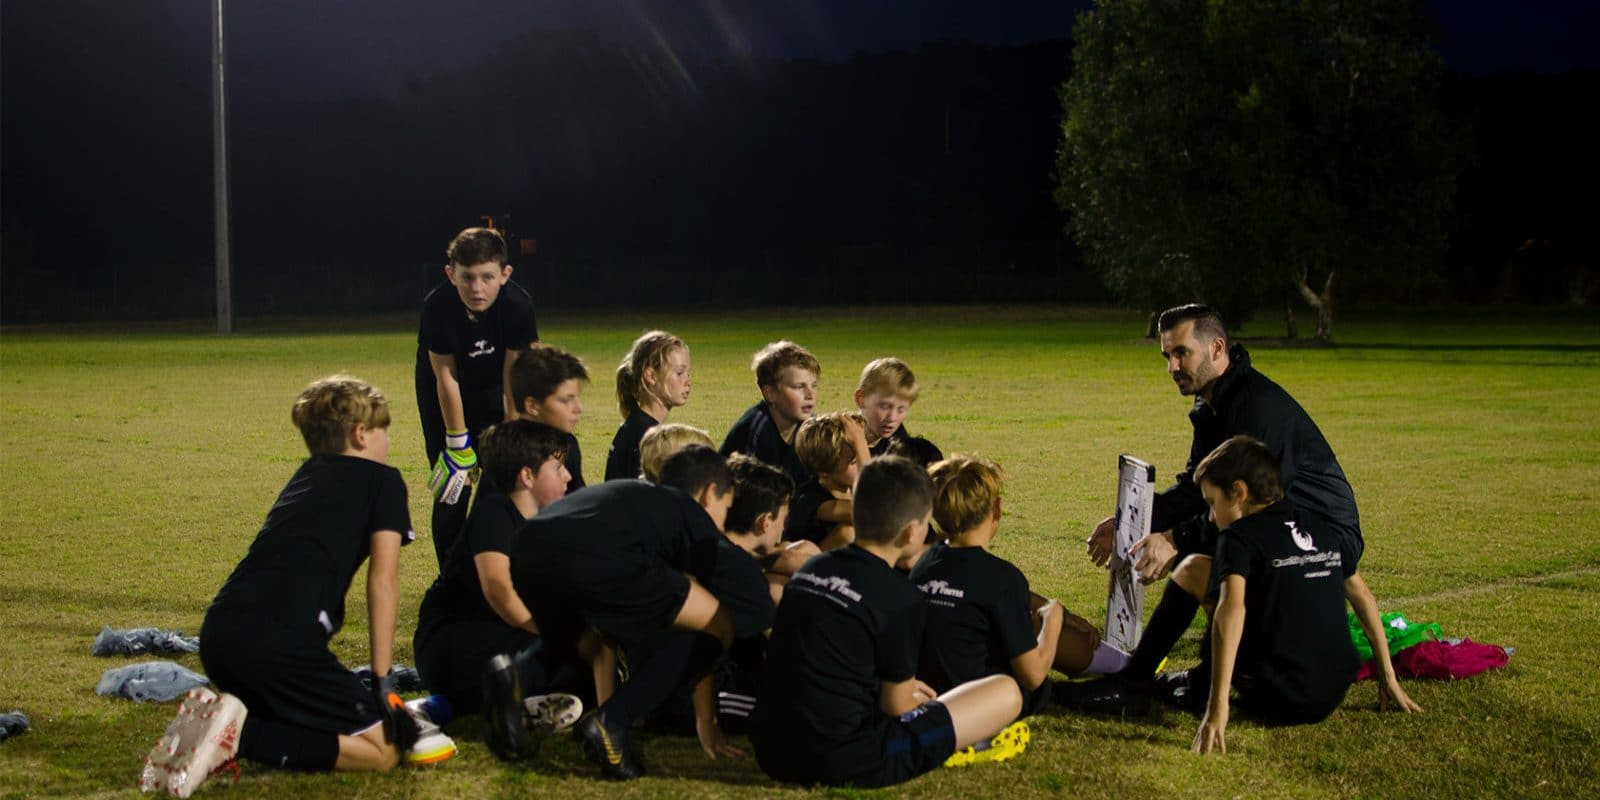 A football coach talking to his players.